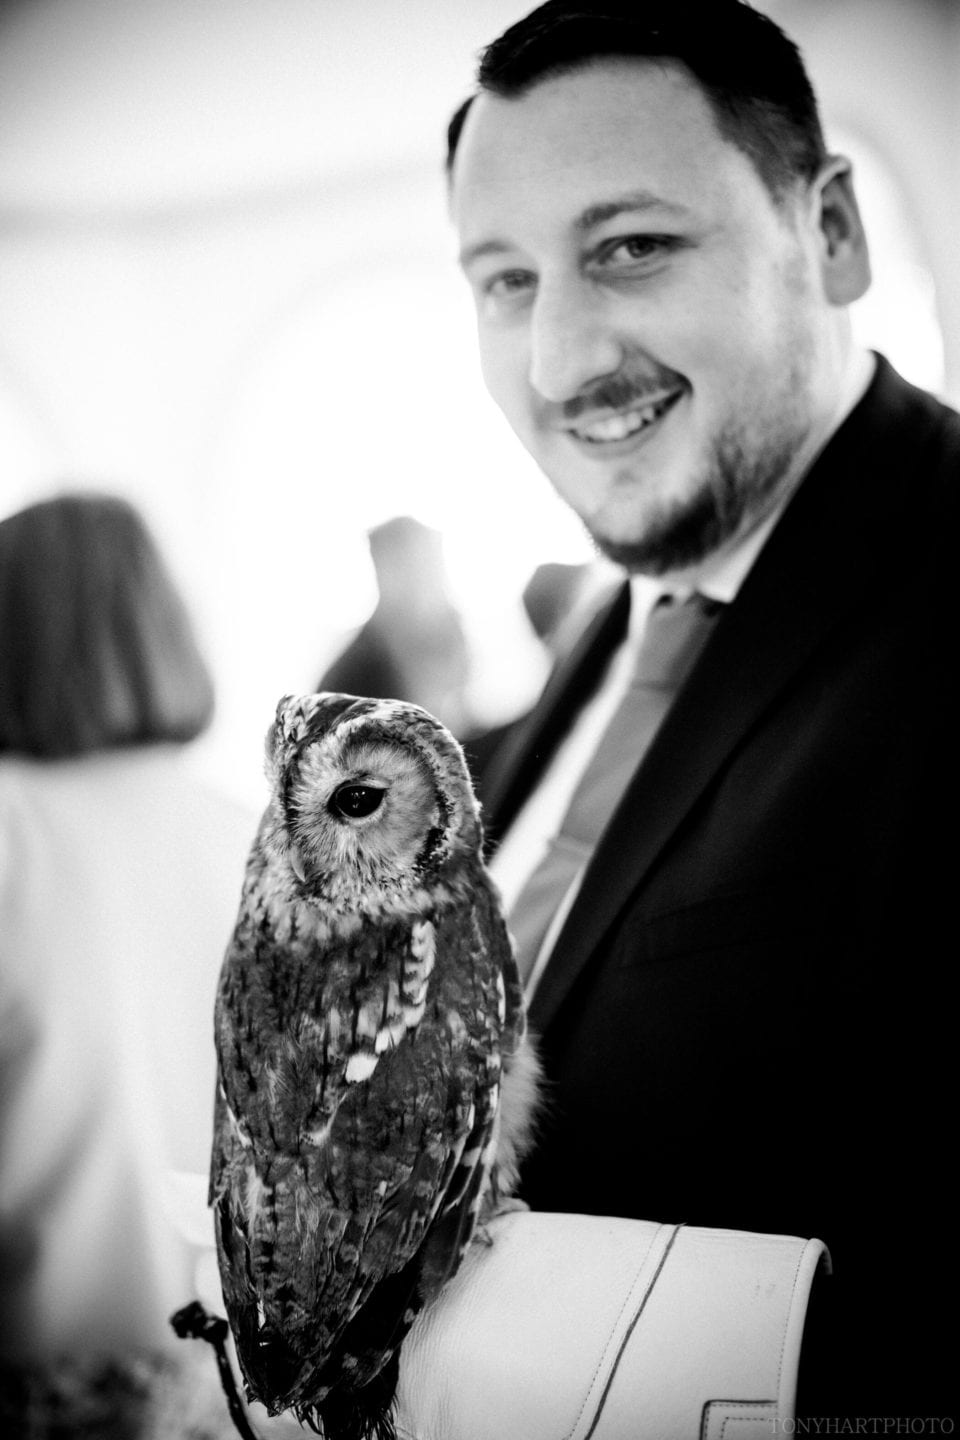 Guest with owl